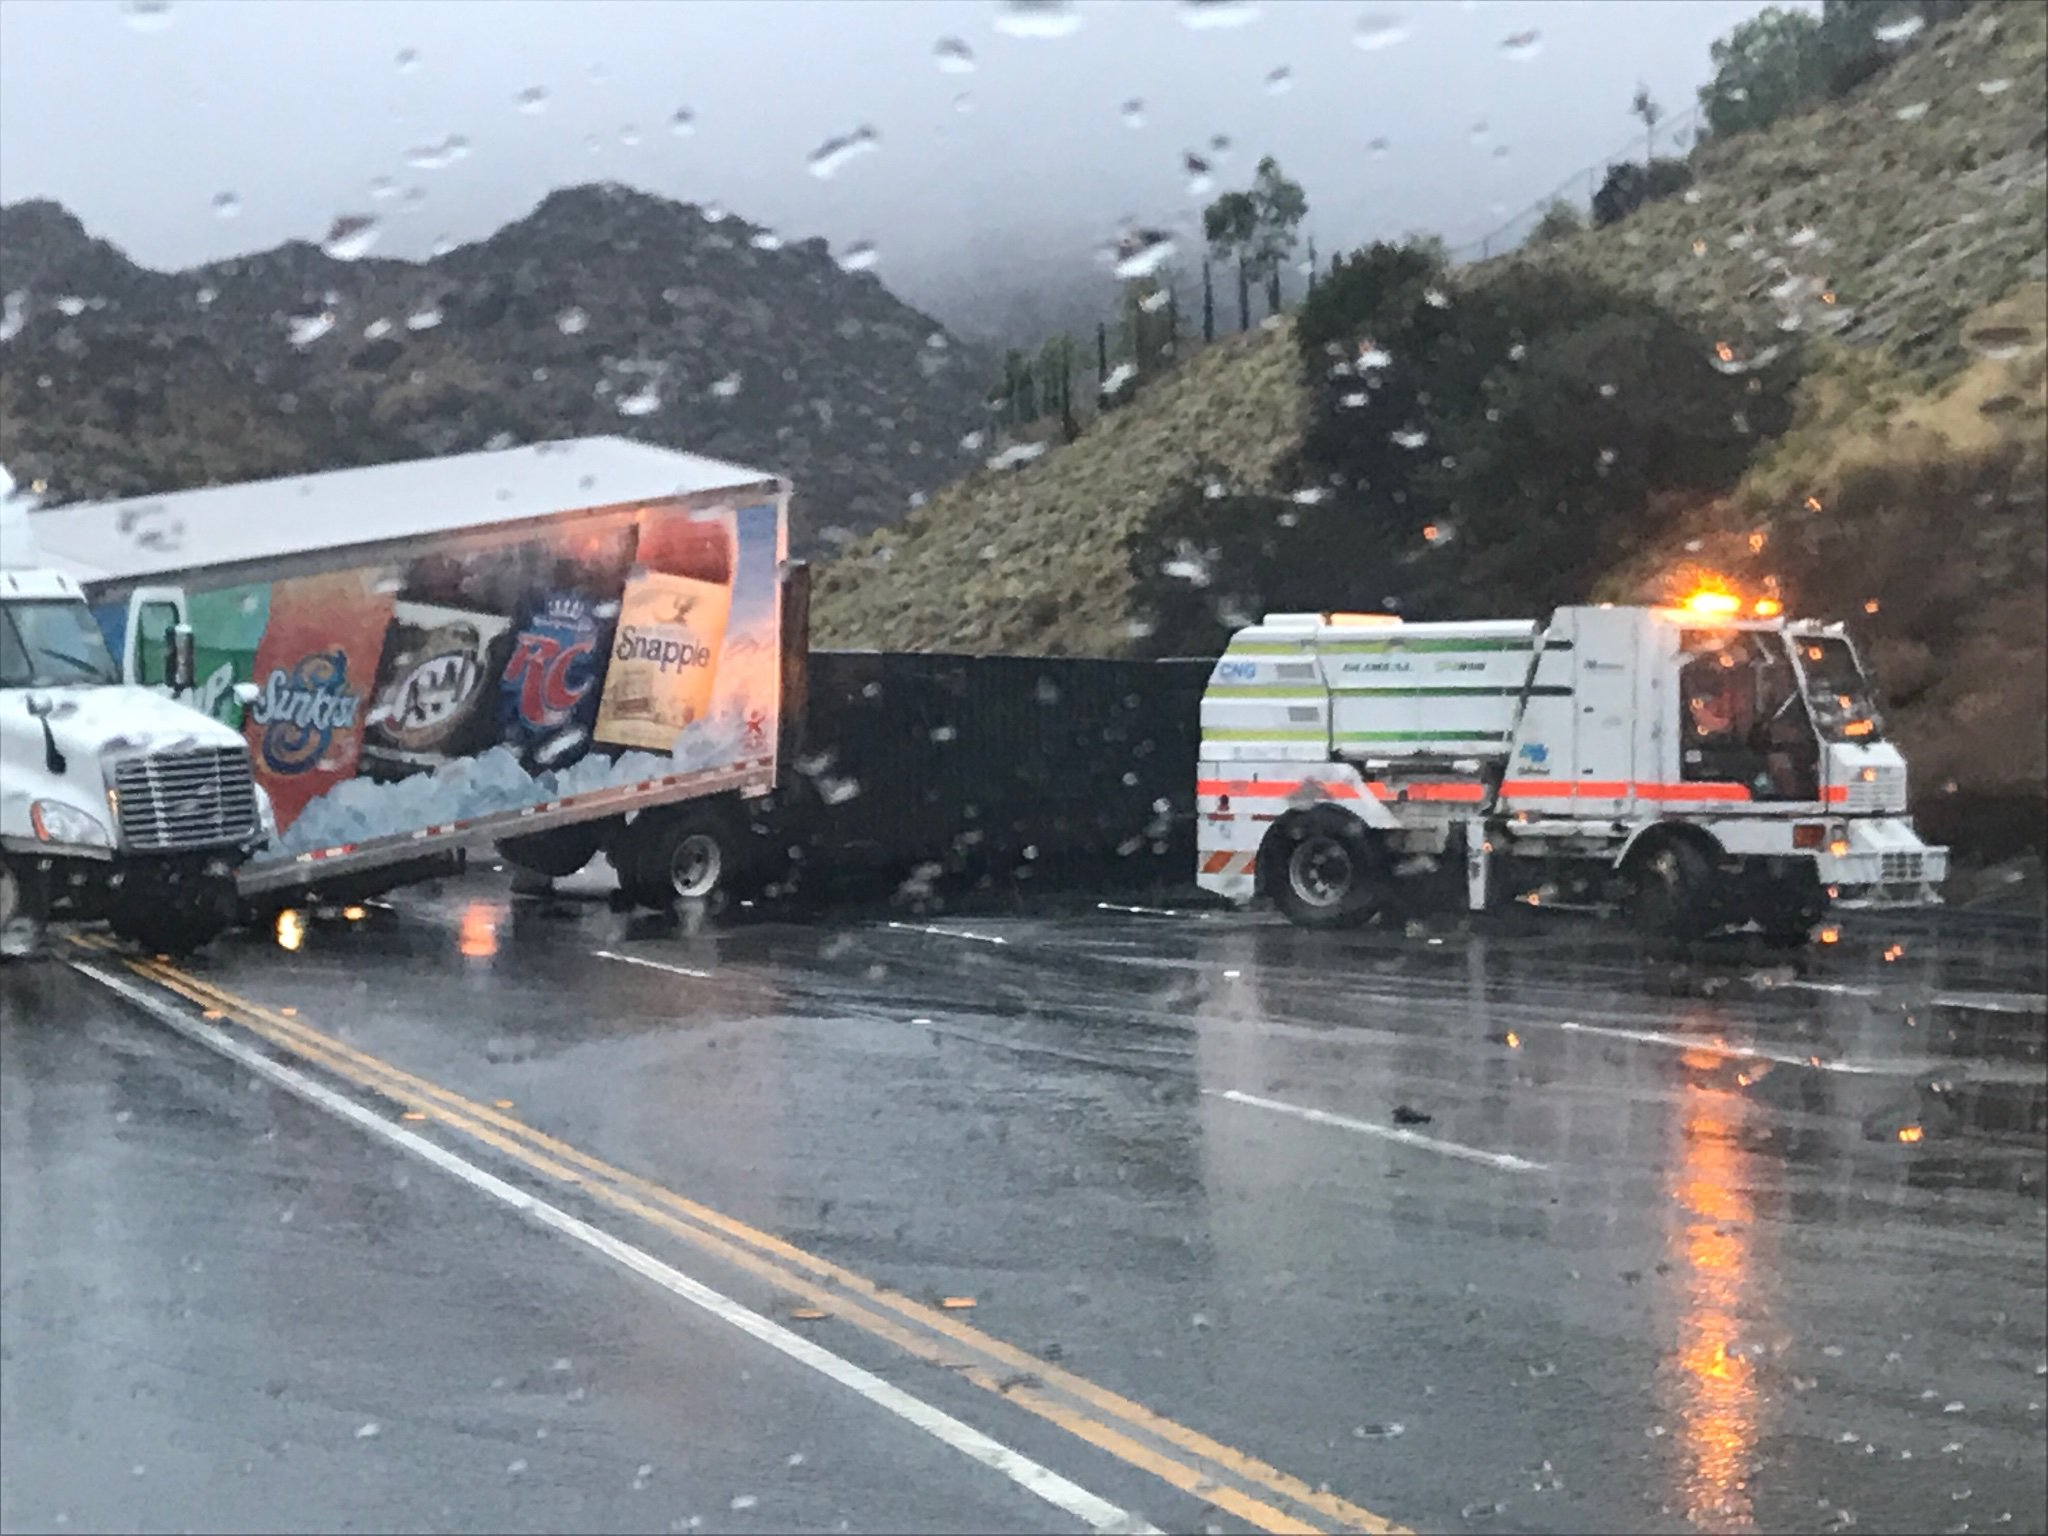 A crash closed part of the 118 Freeway Thursday Nov. 29, 2018 in Simi Valley.